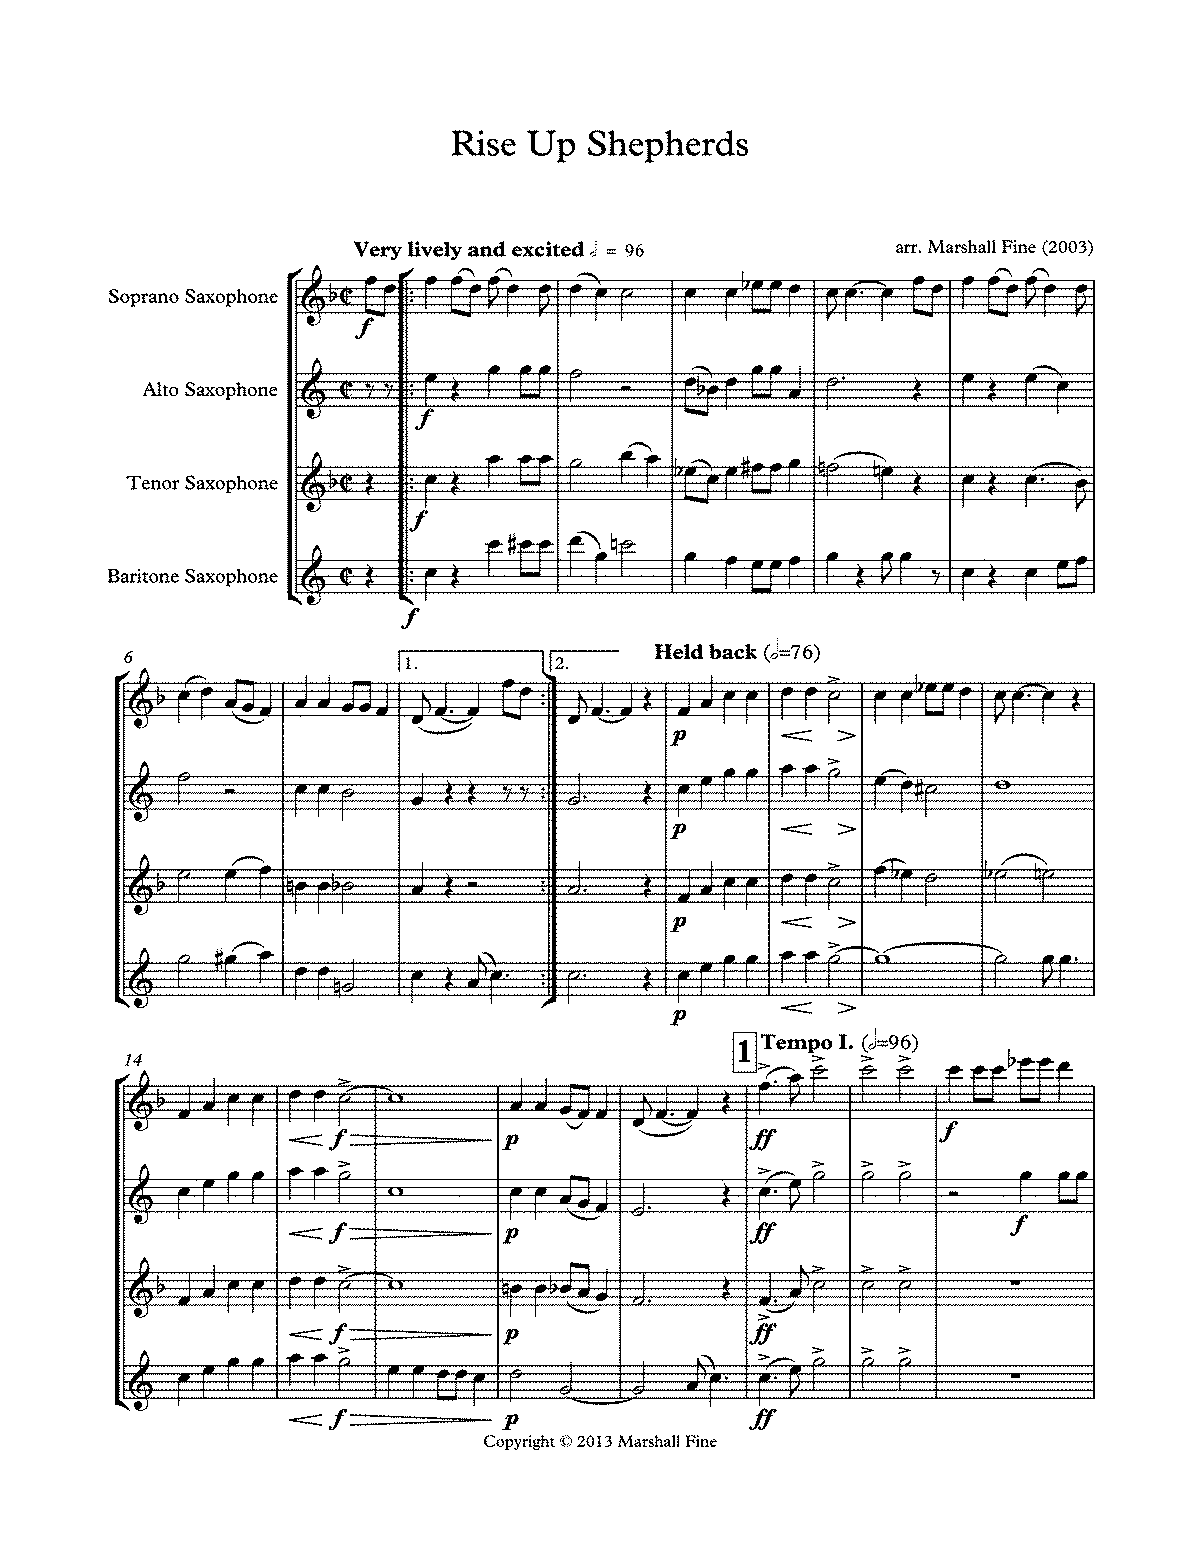 PMLP550530-Sax Rise Up Shepherds - score and parts.pdf